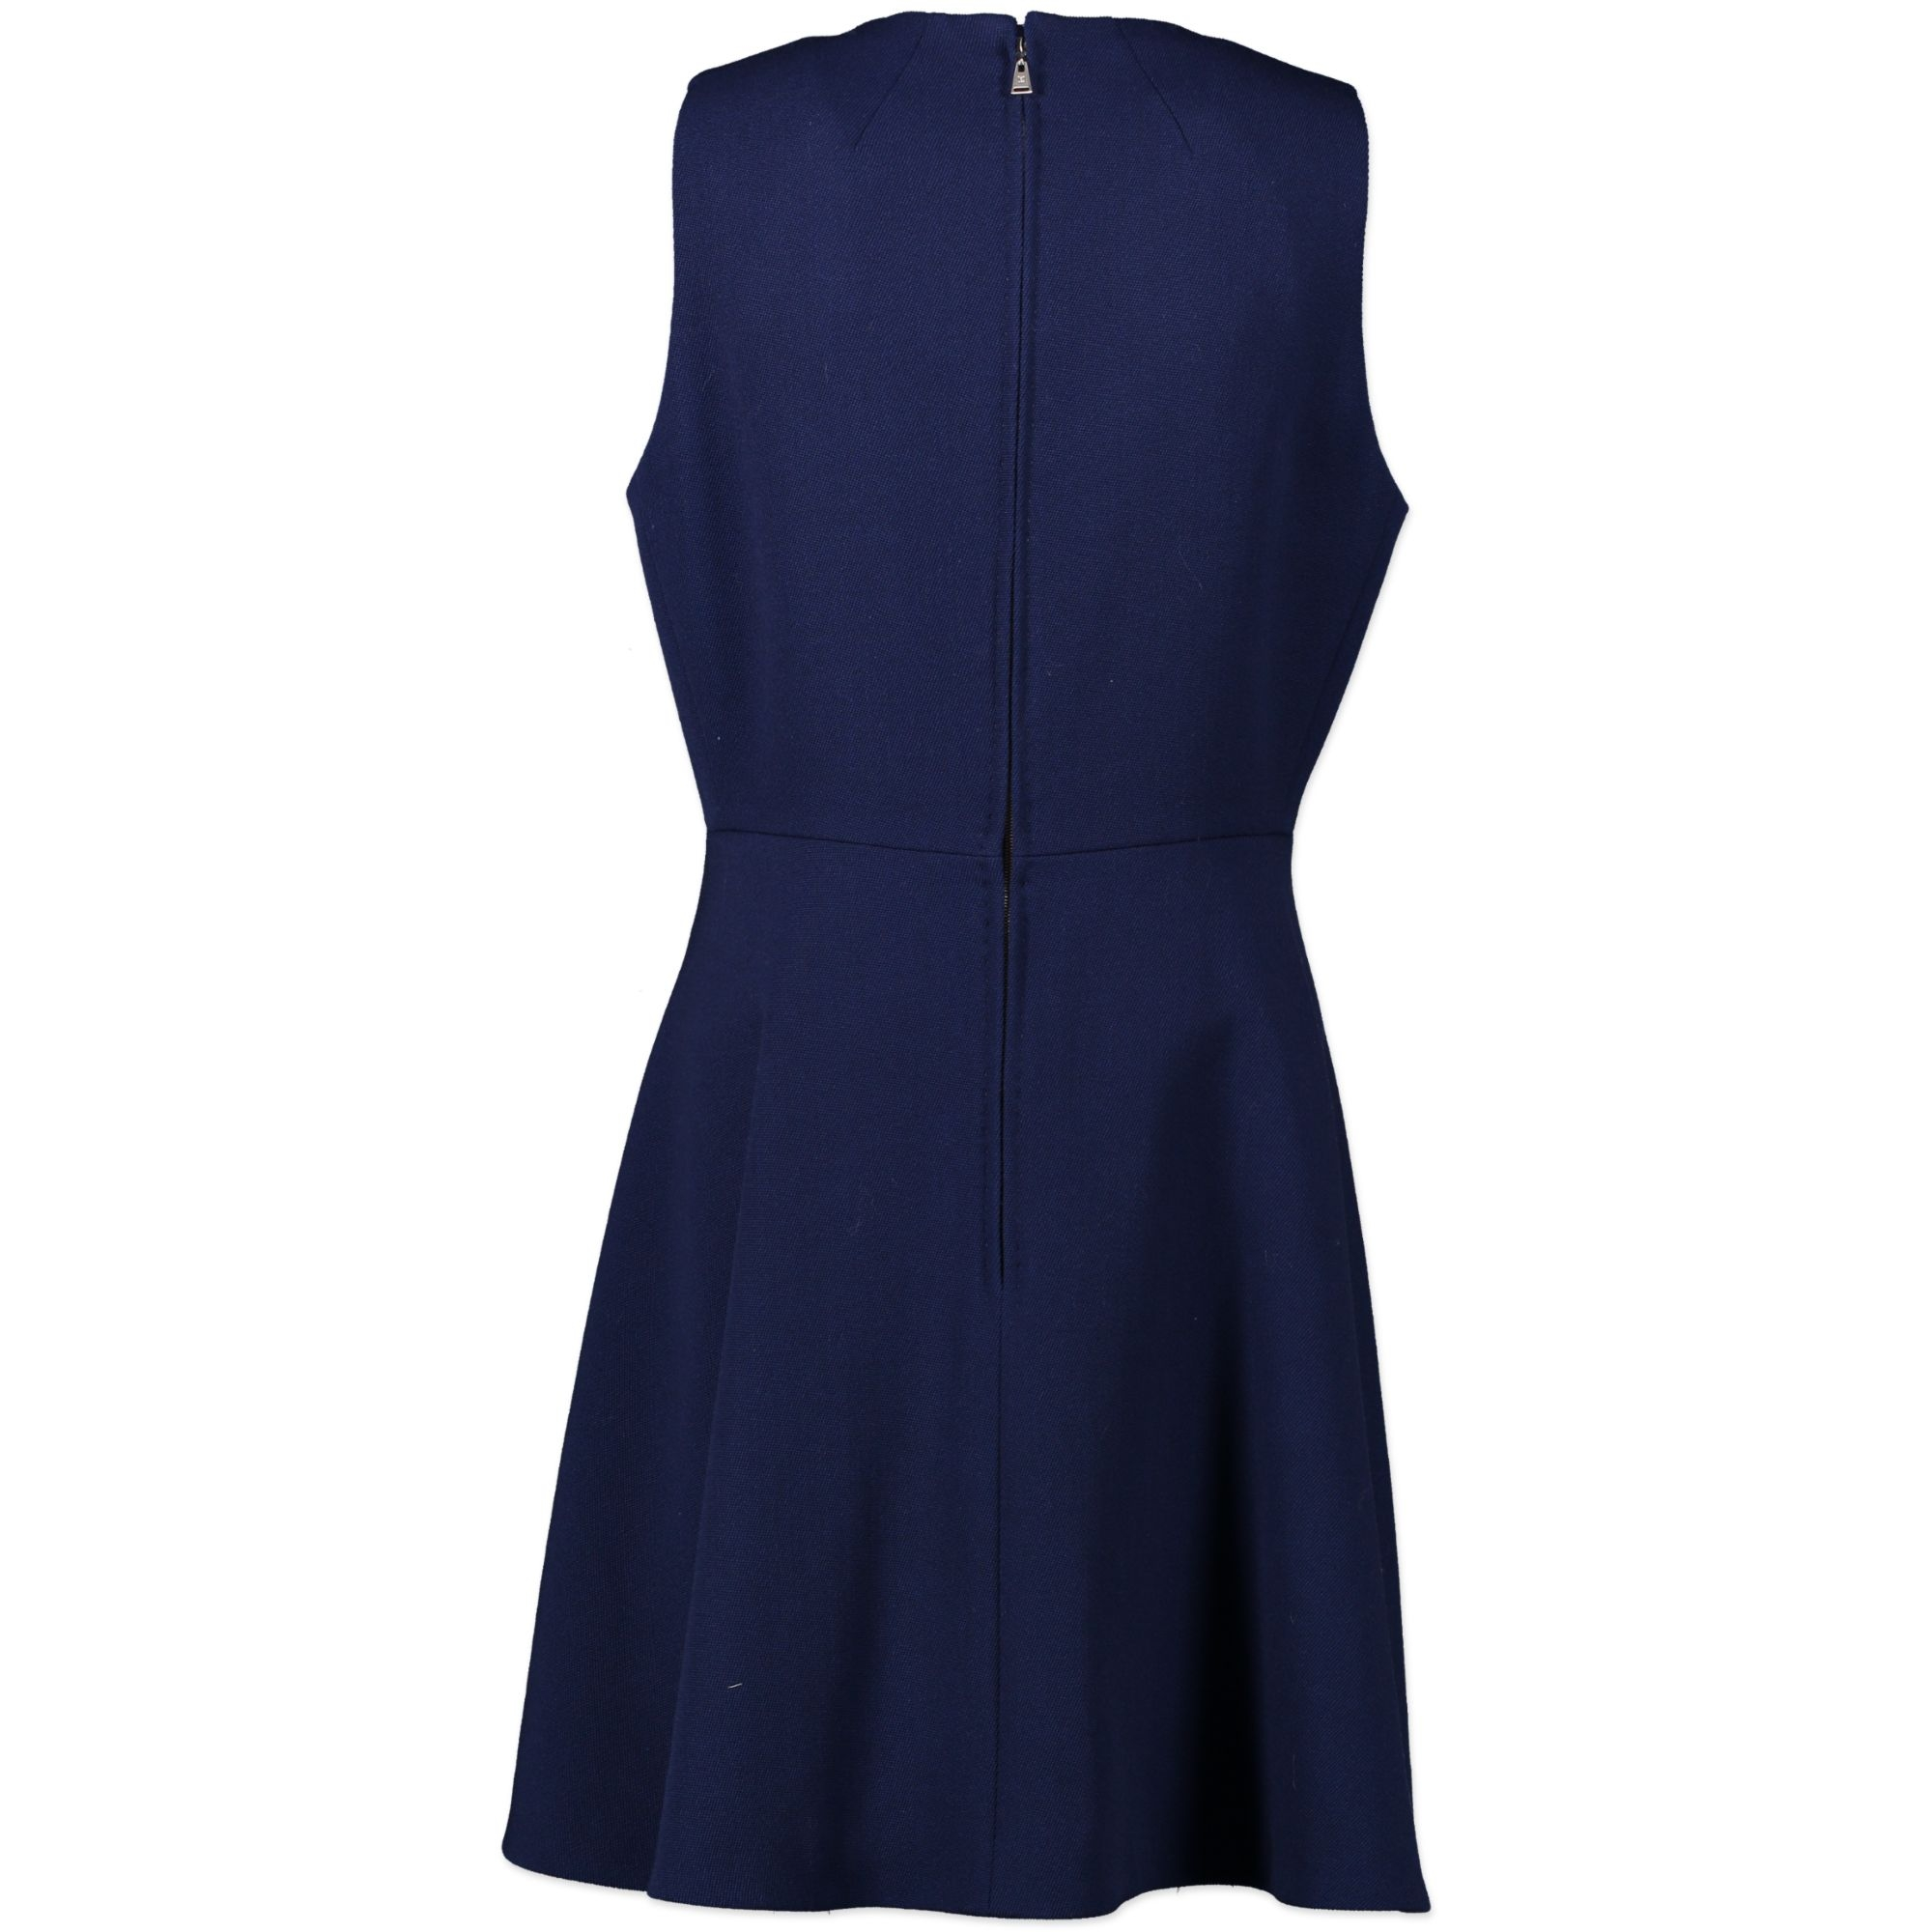 Louis Vuitton Blue Skater Dress - size 42